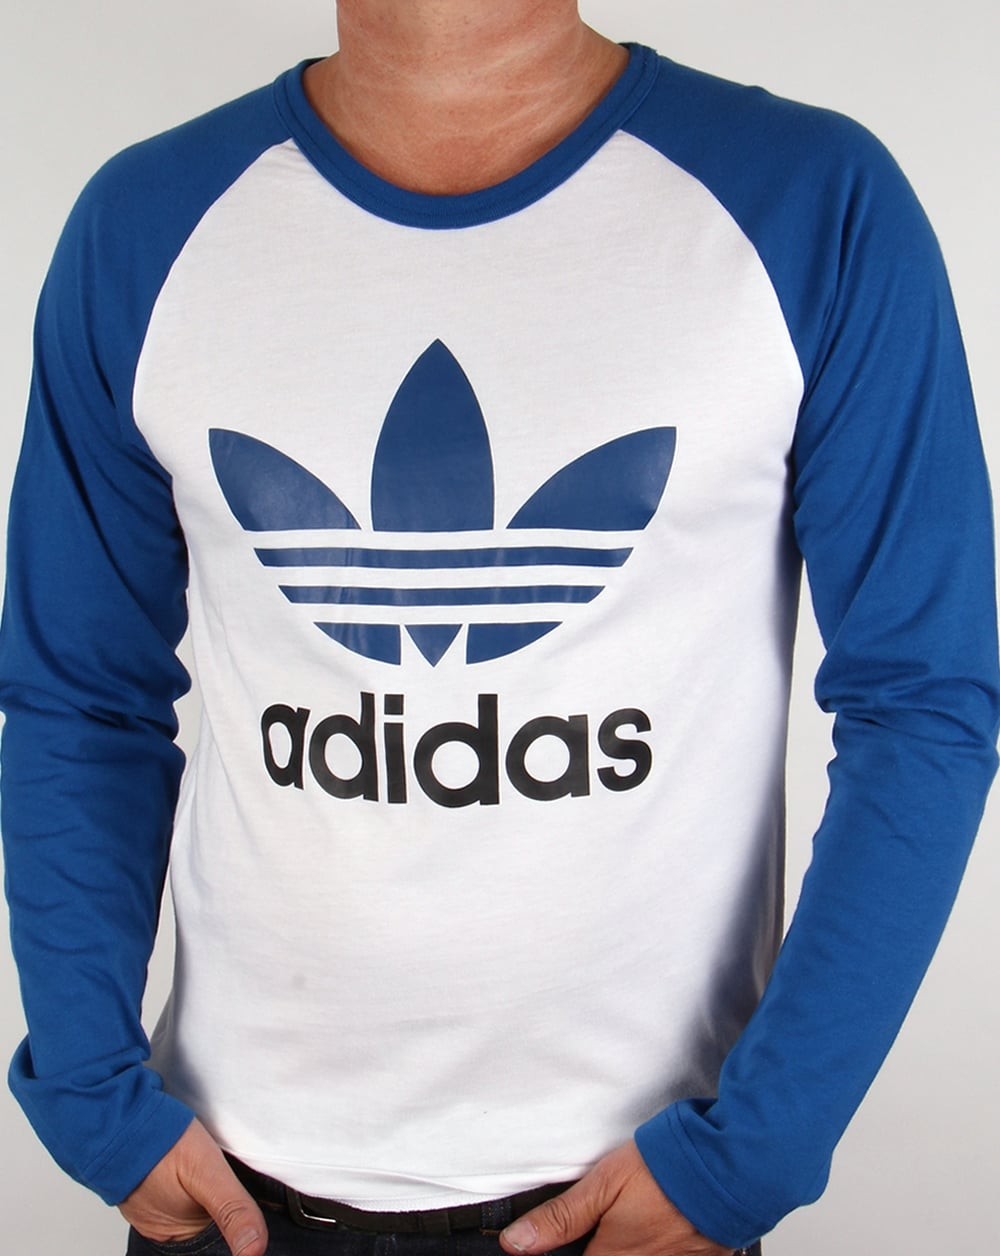 Adidas originals trefoil long sleeve raglan t shirt white for Adidas lotus t shirt